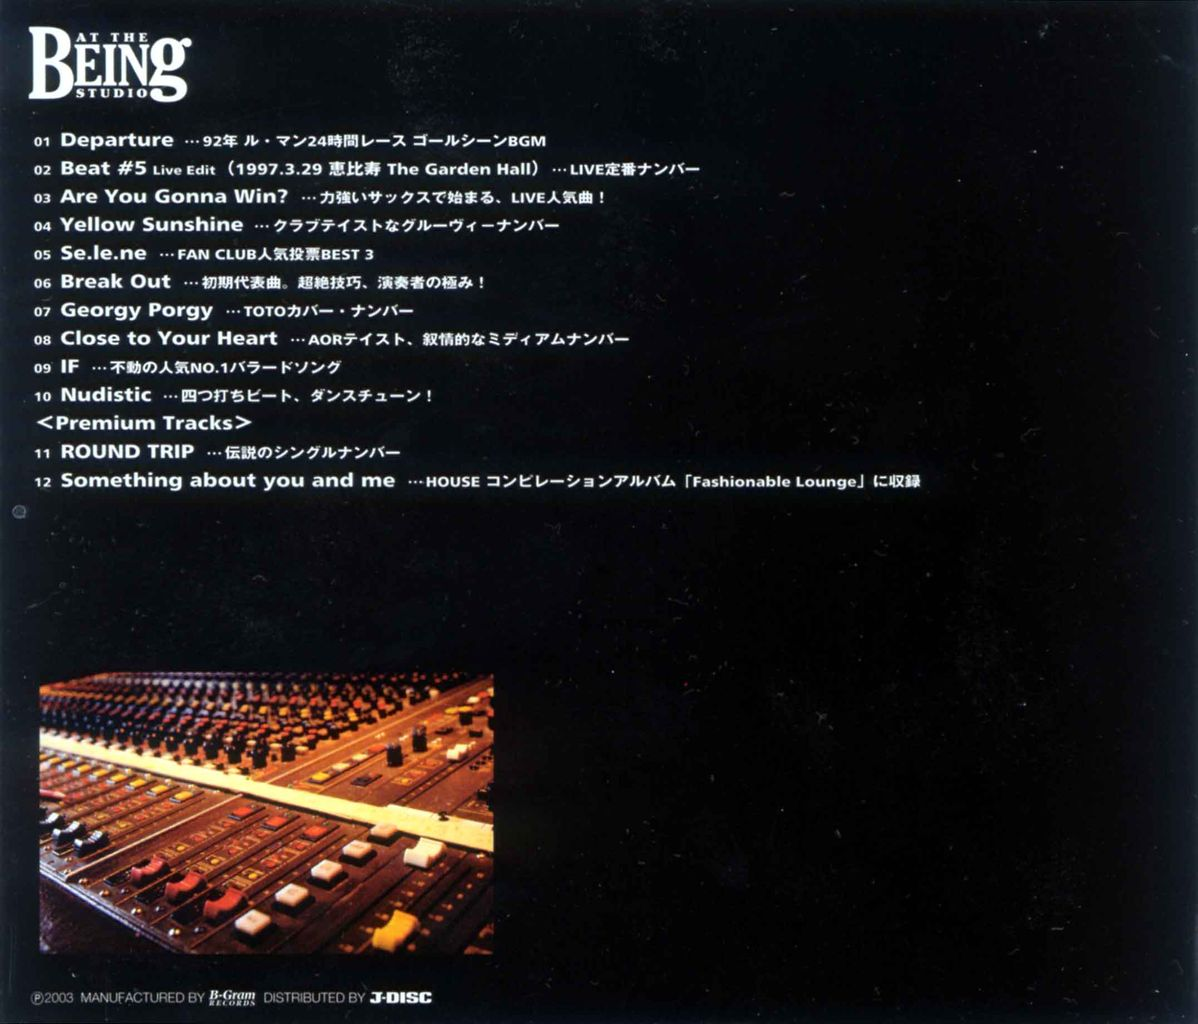 COMPLETE OF DIMENSION AT THE BEING STUDIO-4